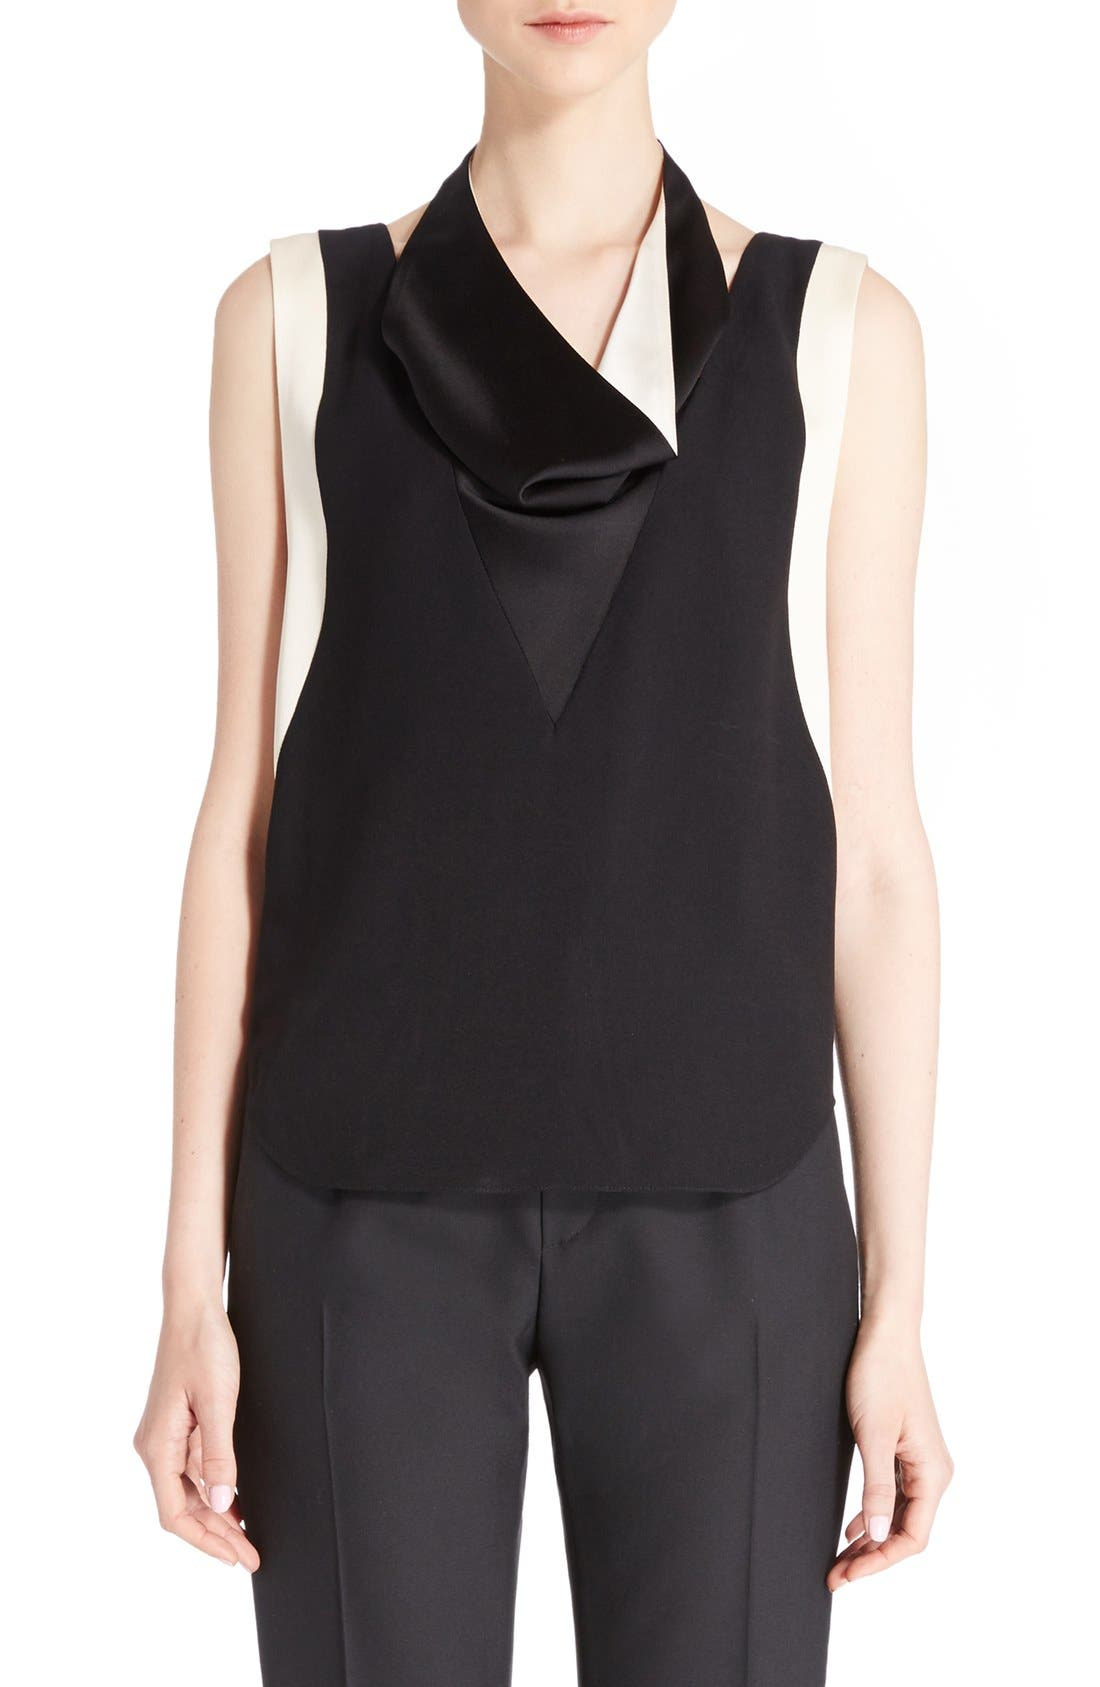 LANVIN Contrast Trim Satin Back Crepe Top